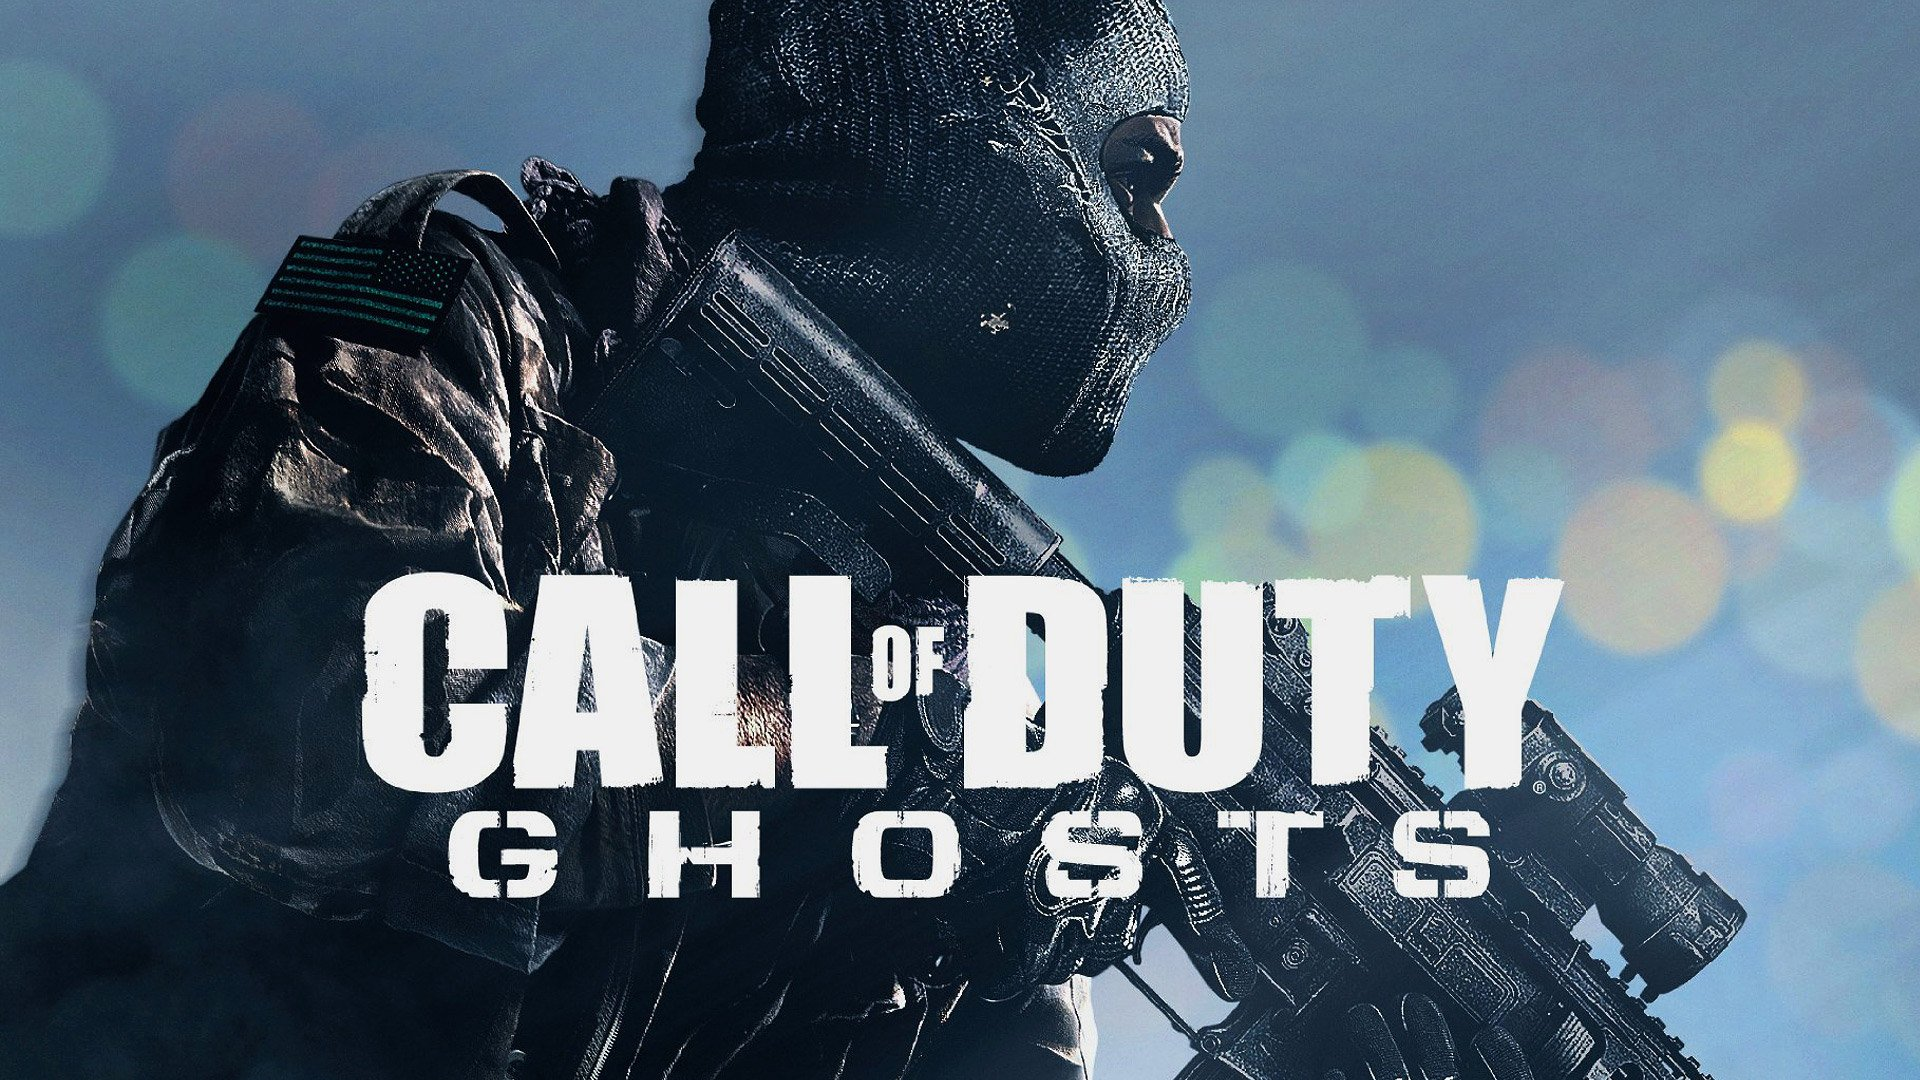 Call Of Duty Ghosts Wallpaper 1920x1080 290098 Wallpaperup